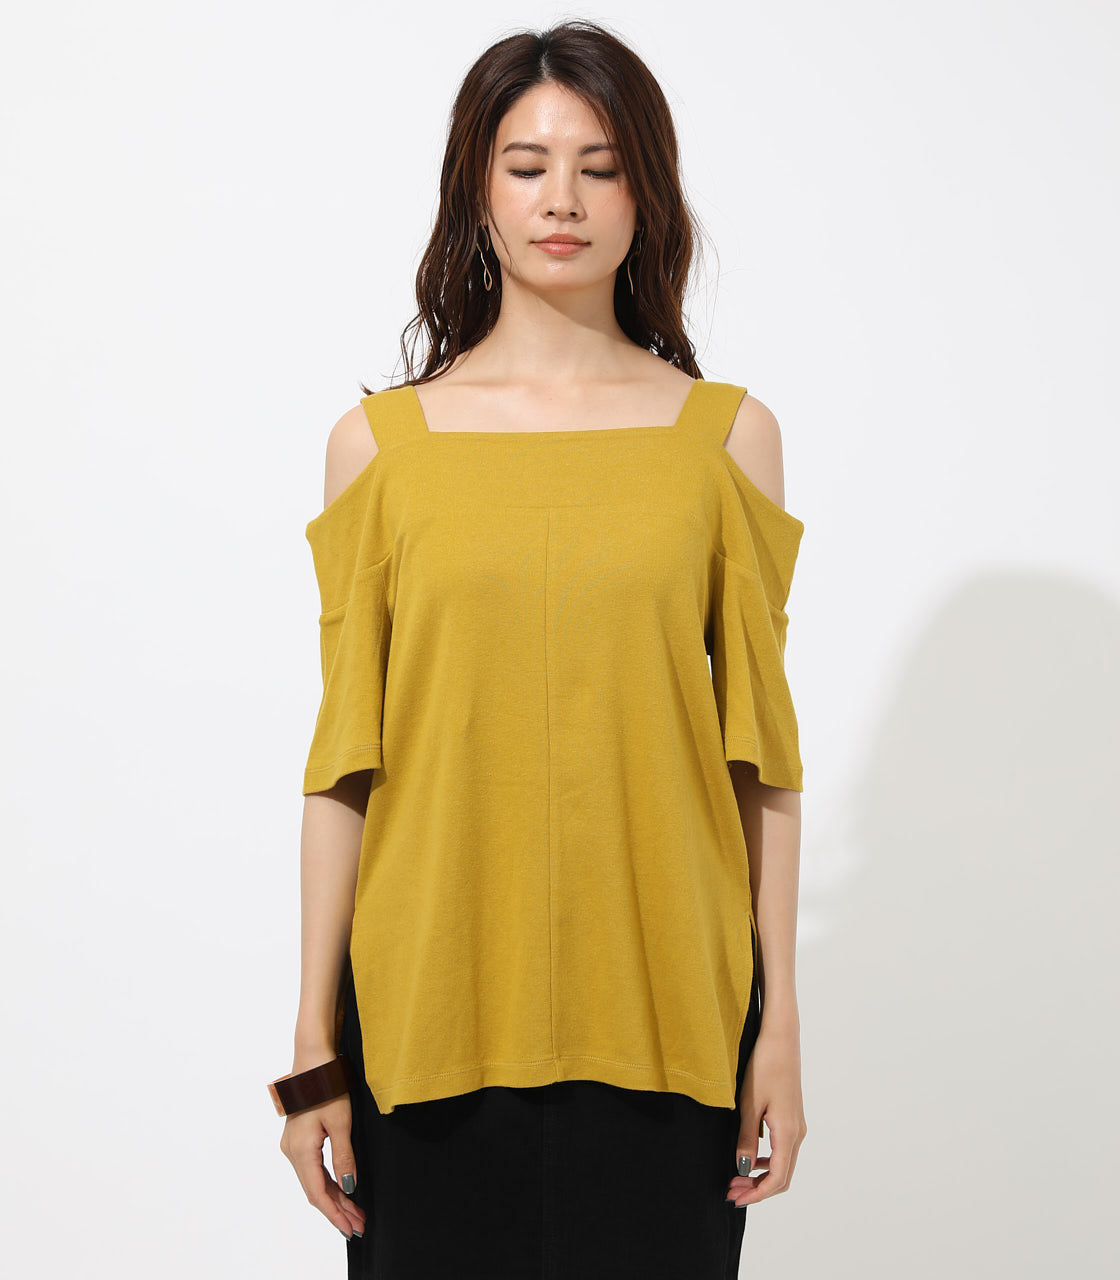 WIDE STRAP OPEN SHOULDER TOPS 詳細画像 D/YEL 4